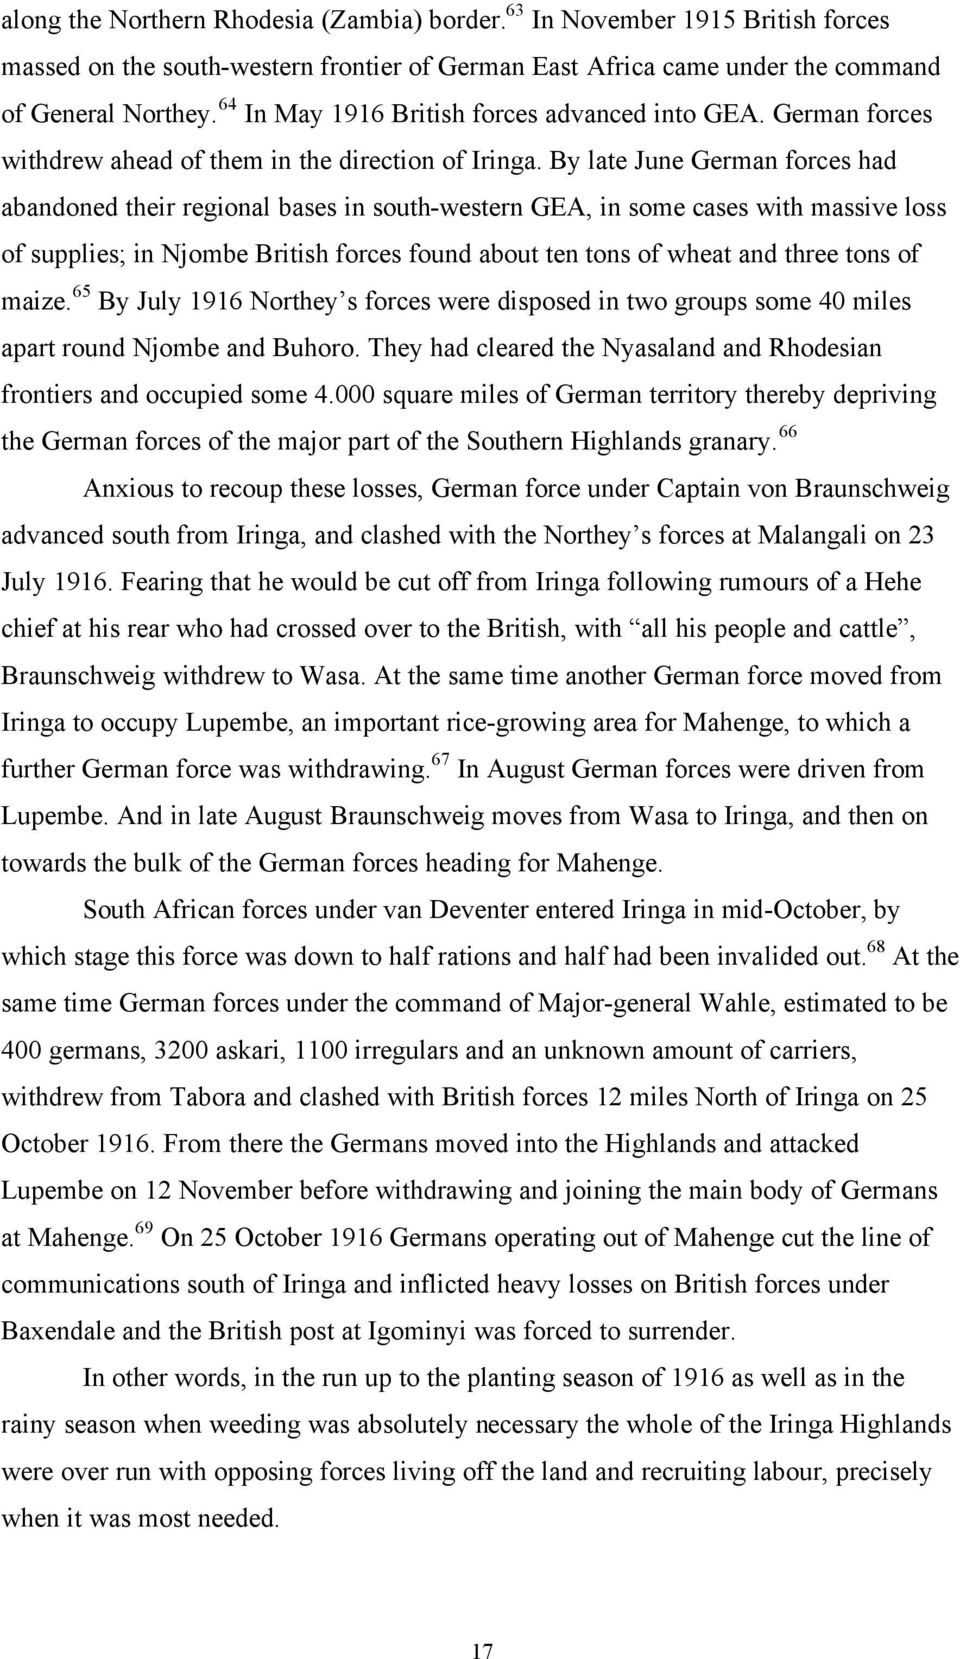 By late June German forces had abandoned their regional bases in south-western GEA, in some cases with massive loss of supplies; in Njombe British forces found about ten tons of wheat and three tons